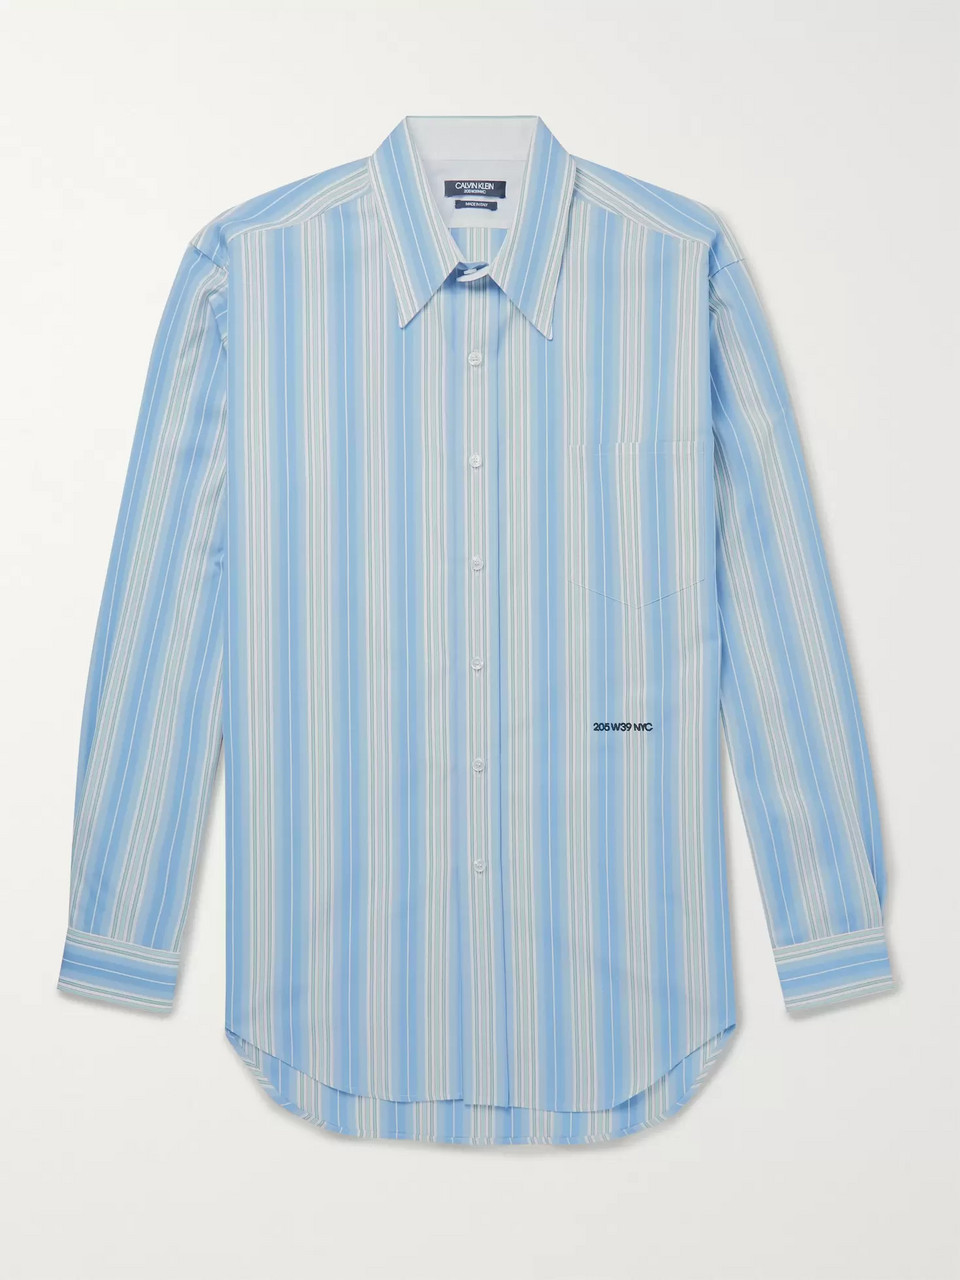 CALVIN KLEIN 205W39NYC Striped Cotton-Poplin Shirt